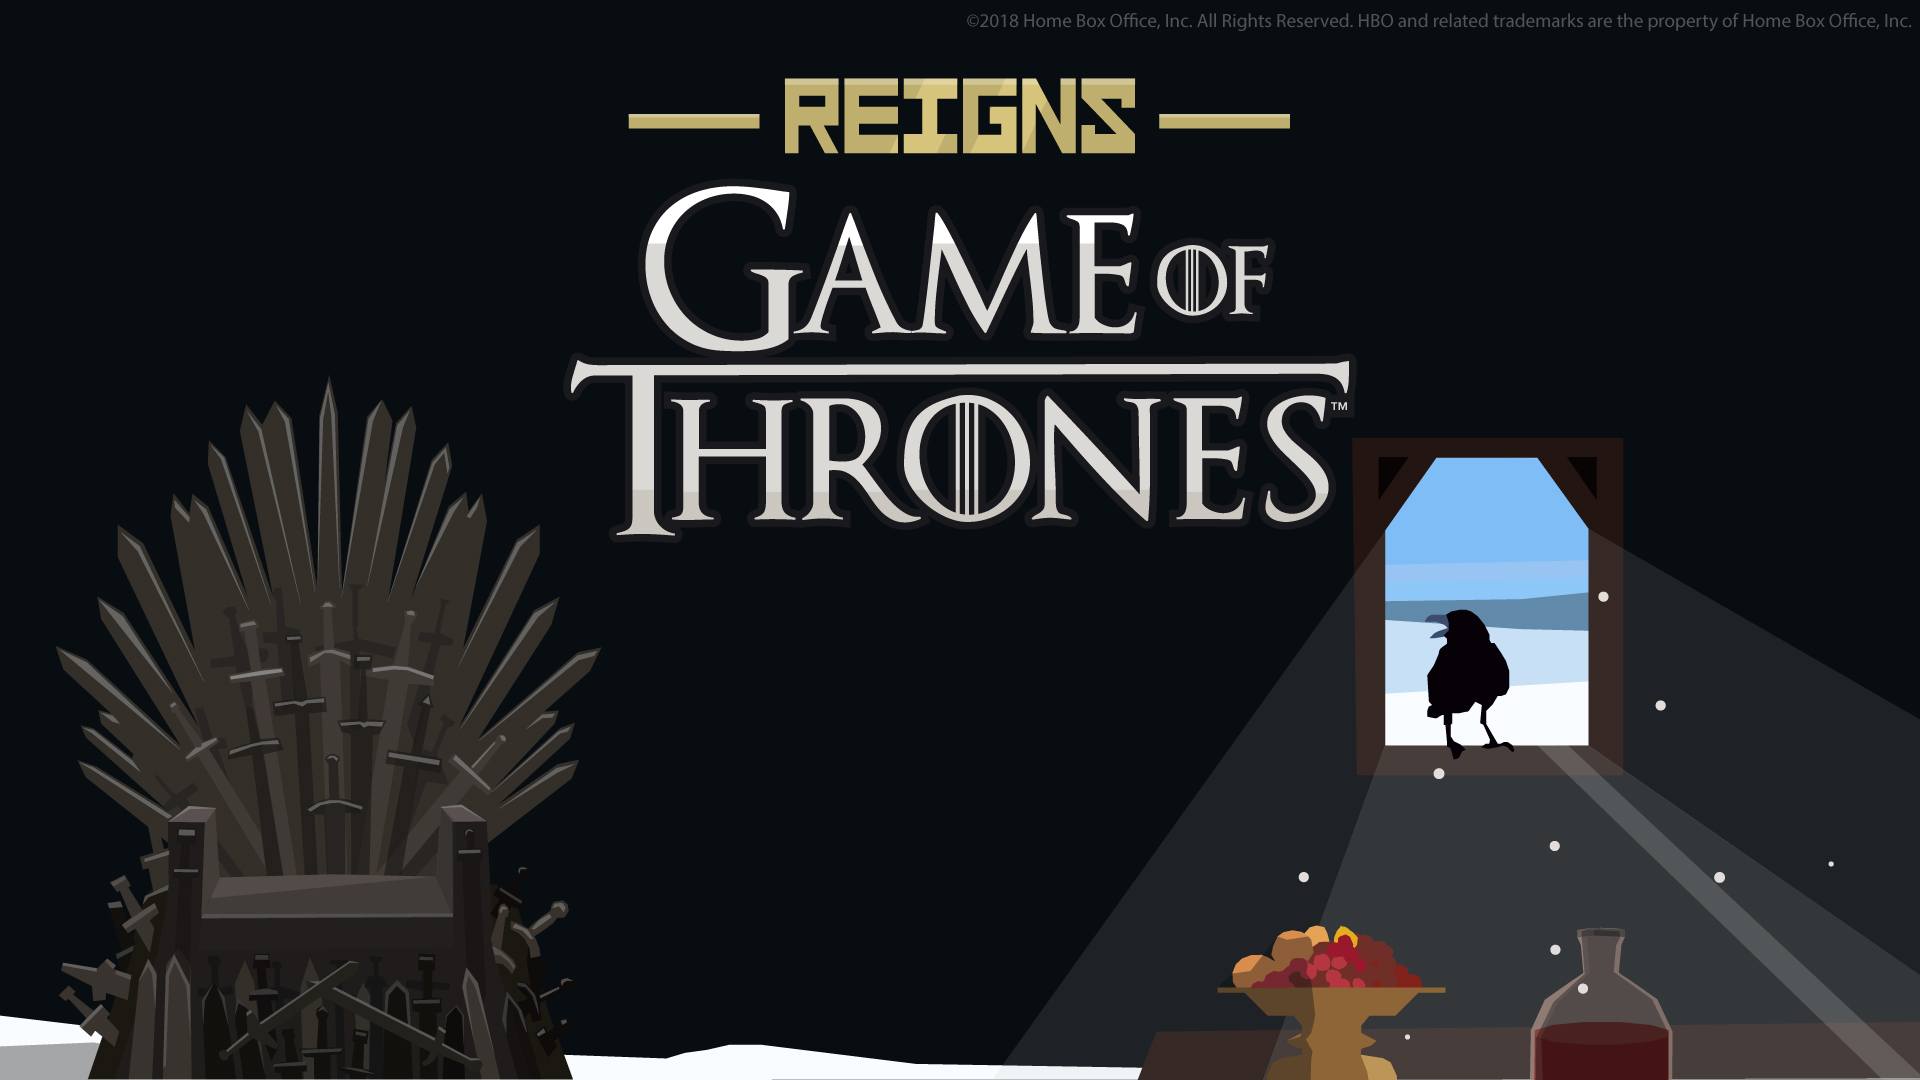 Resultado de imagen para reigns game of thrones